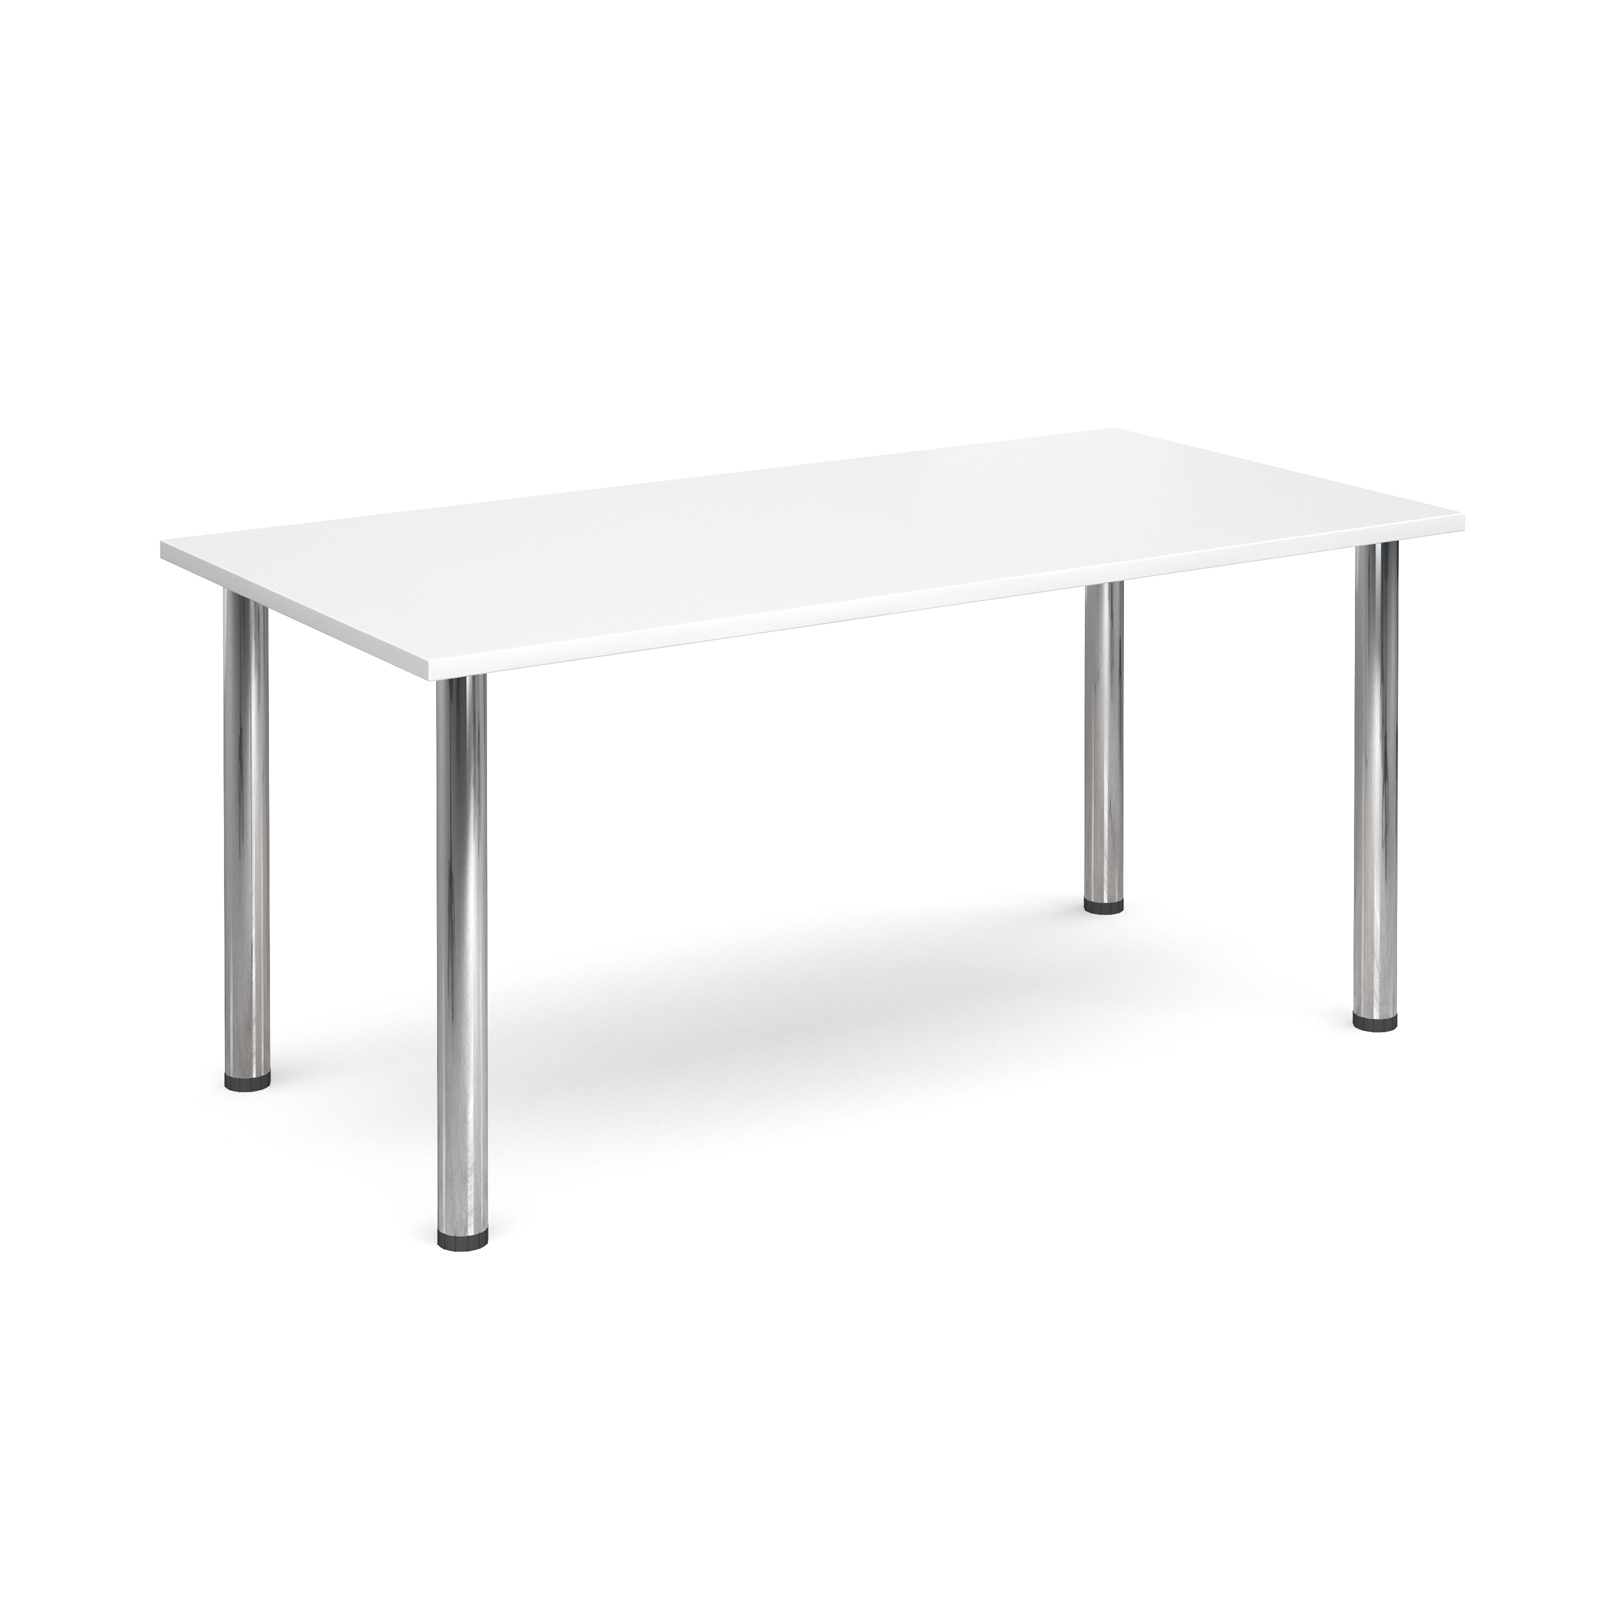 1600 Flexi table Chrome radial Legs-White